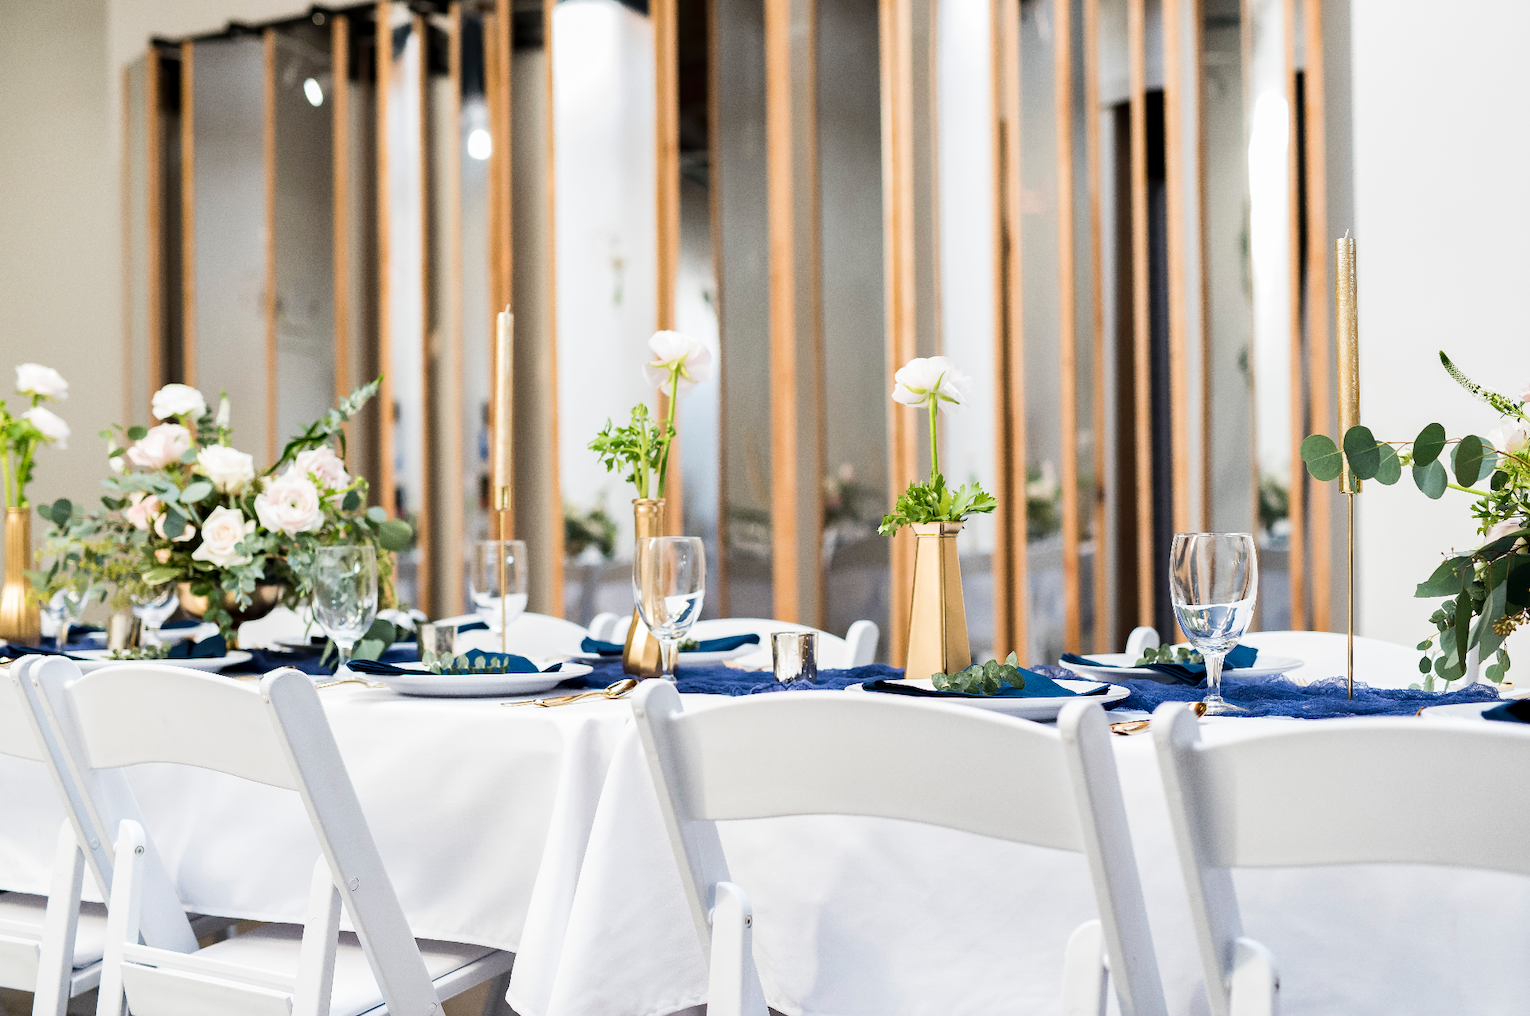 An Intimate Brunch Reception Your guests Will Love